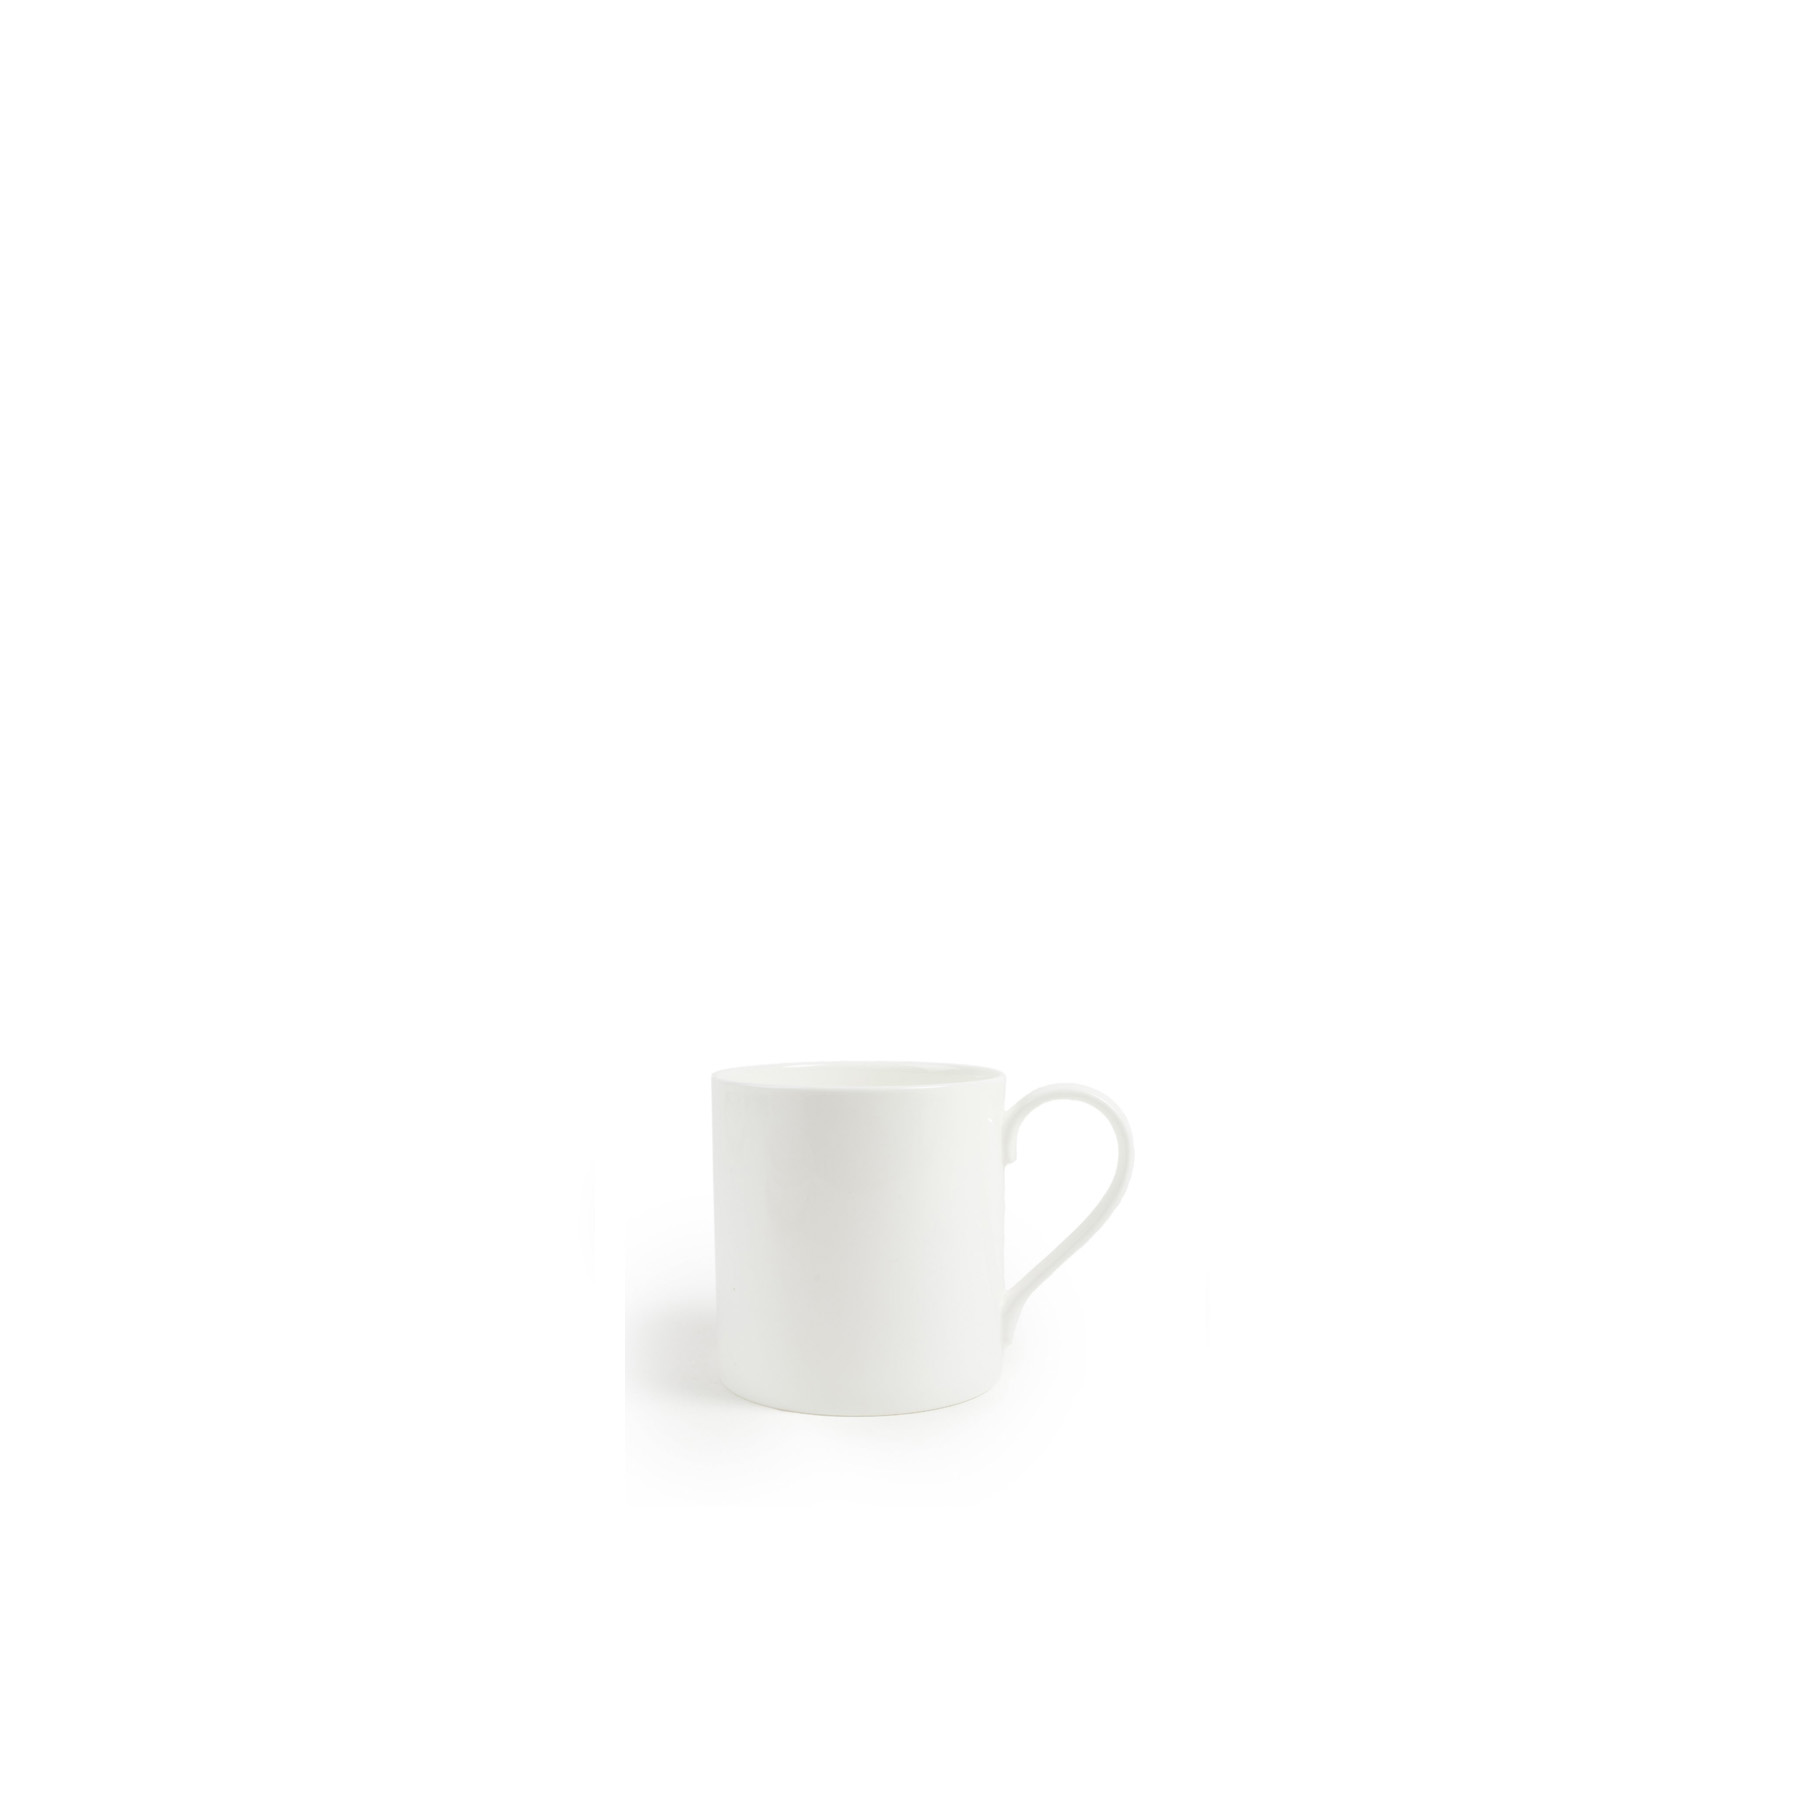 White Mug - The purist fine bone china table ware. Designed by Chris Johnson and made in Stoke-on-Trent. This forms the base of all our collections and the most wonderful foundation for any table.